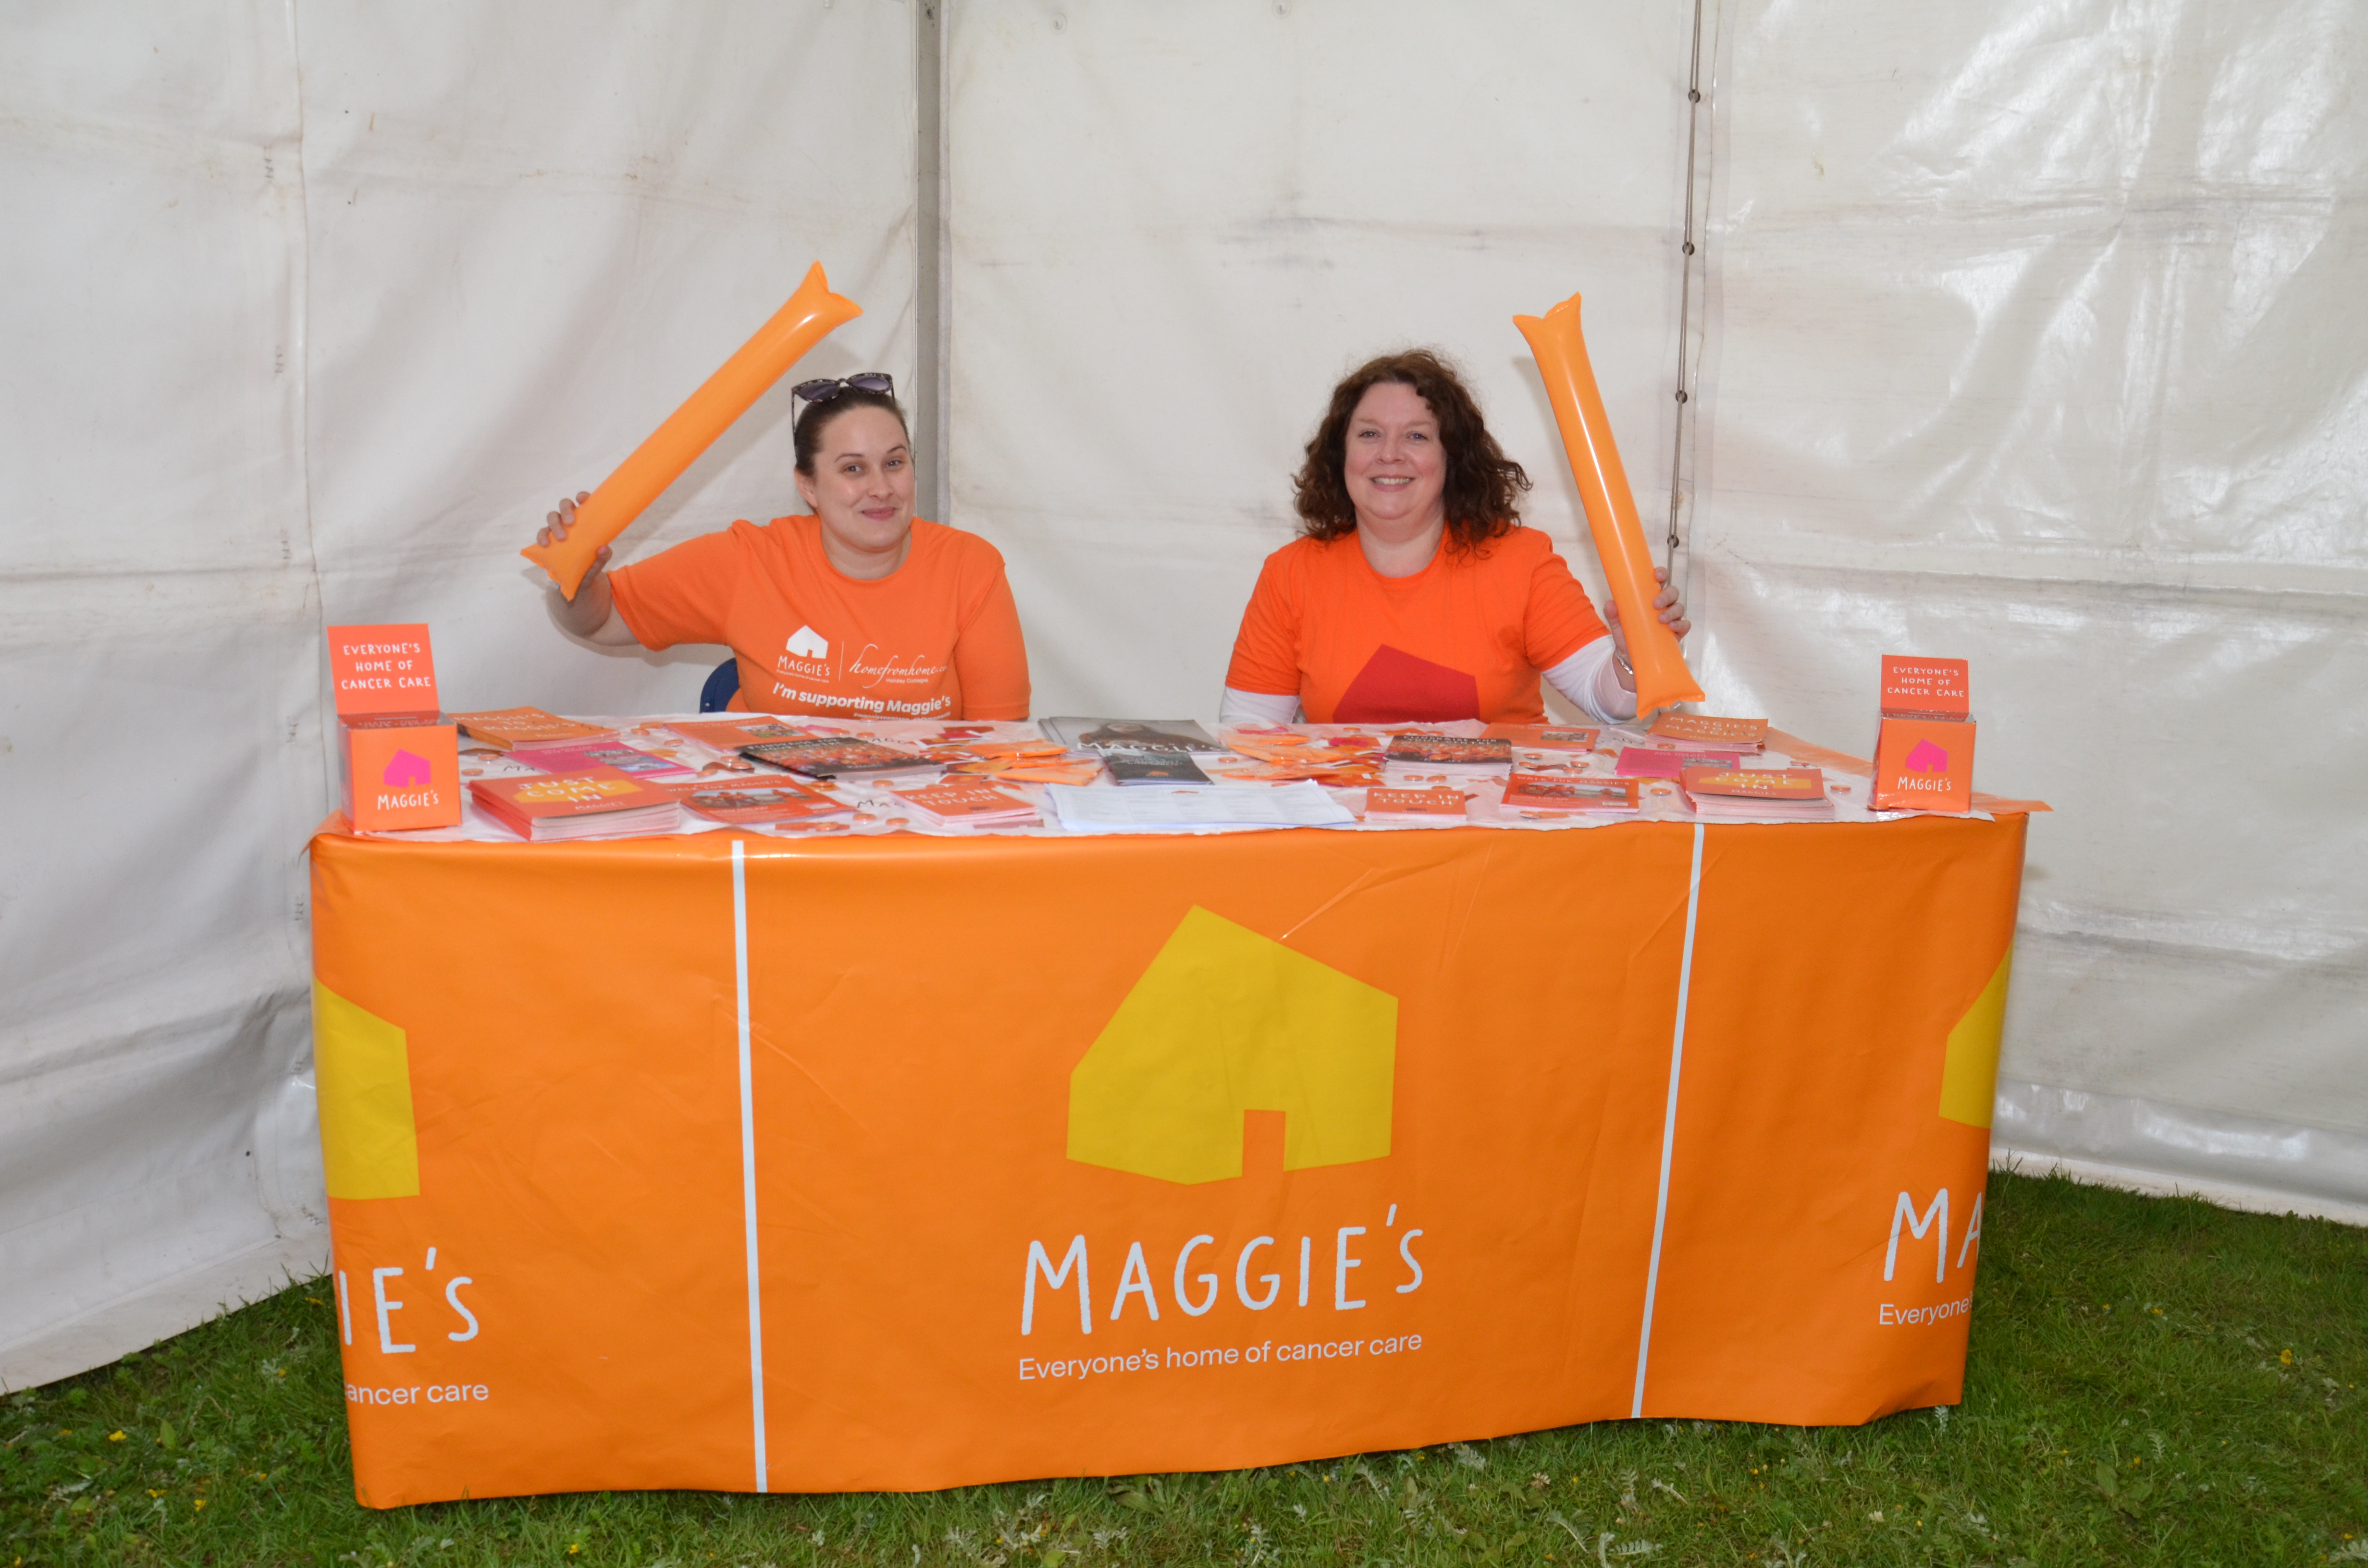 JCP Swansea Half Marathon Announces Maggie's Cancer Care as Charity Partner of the Year